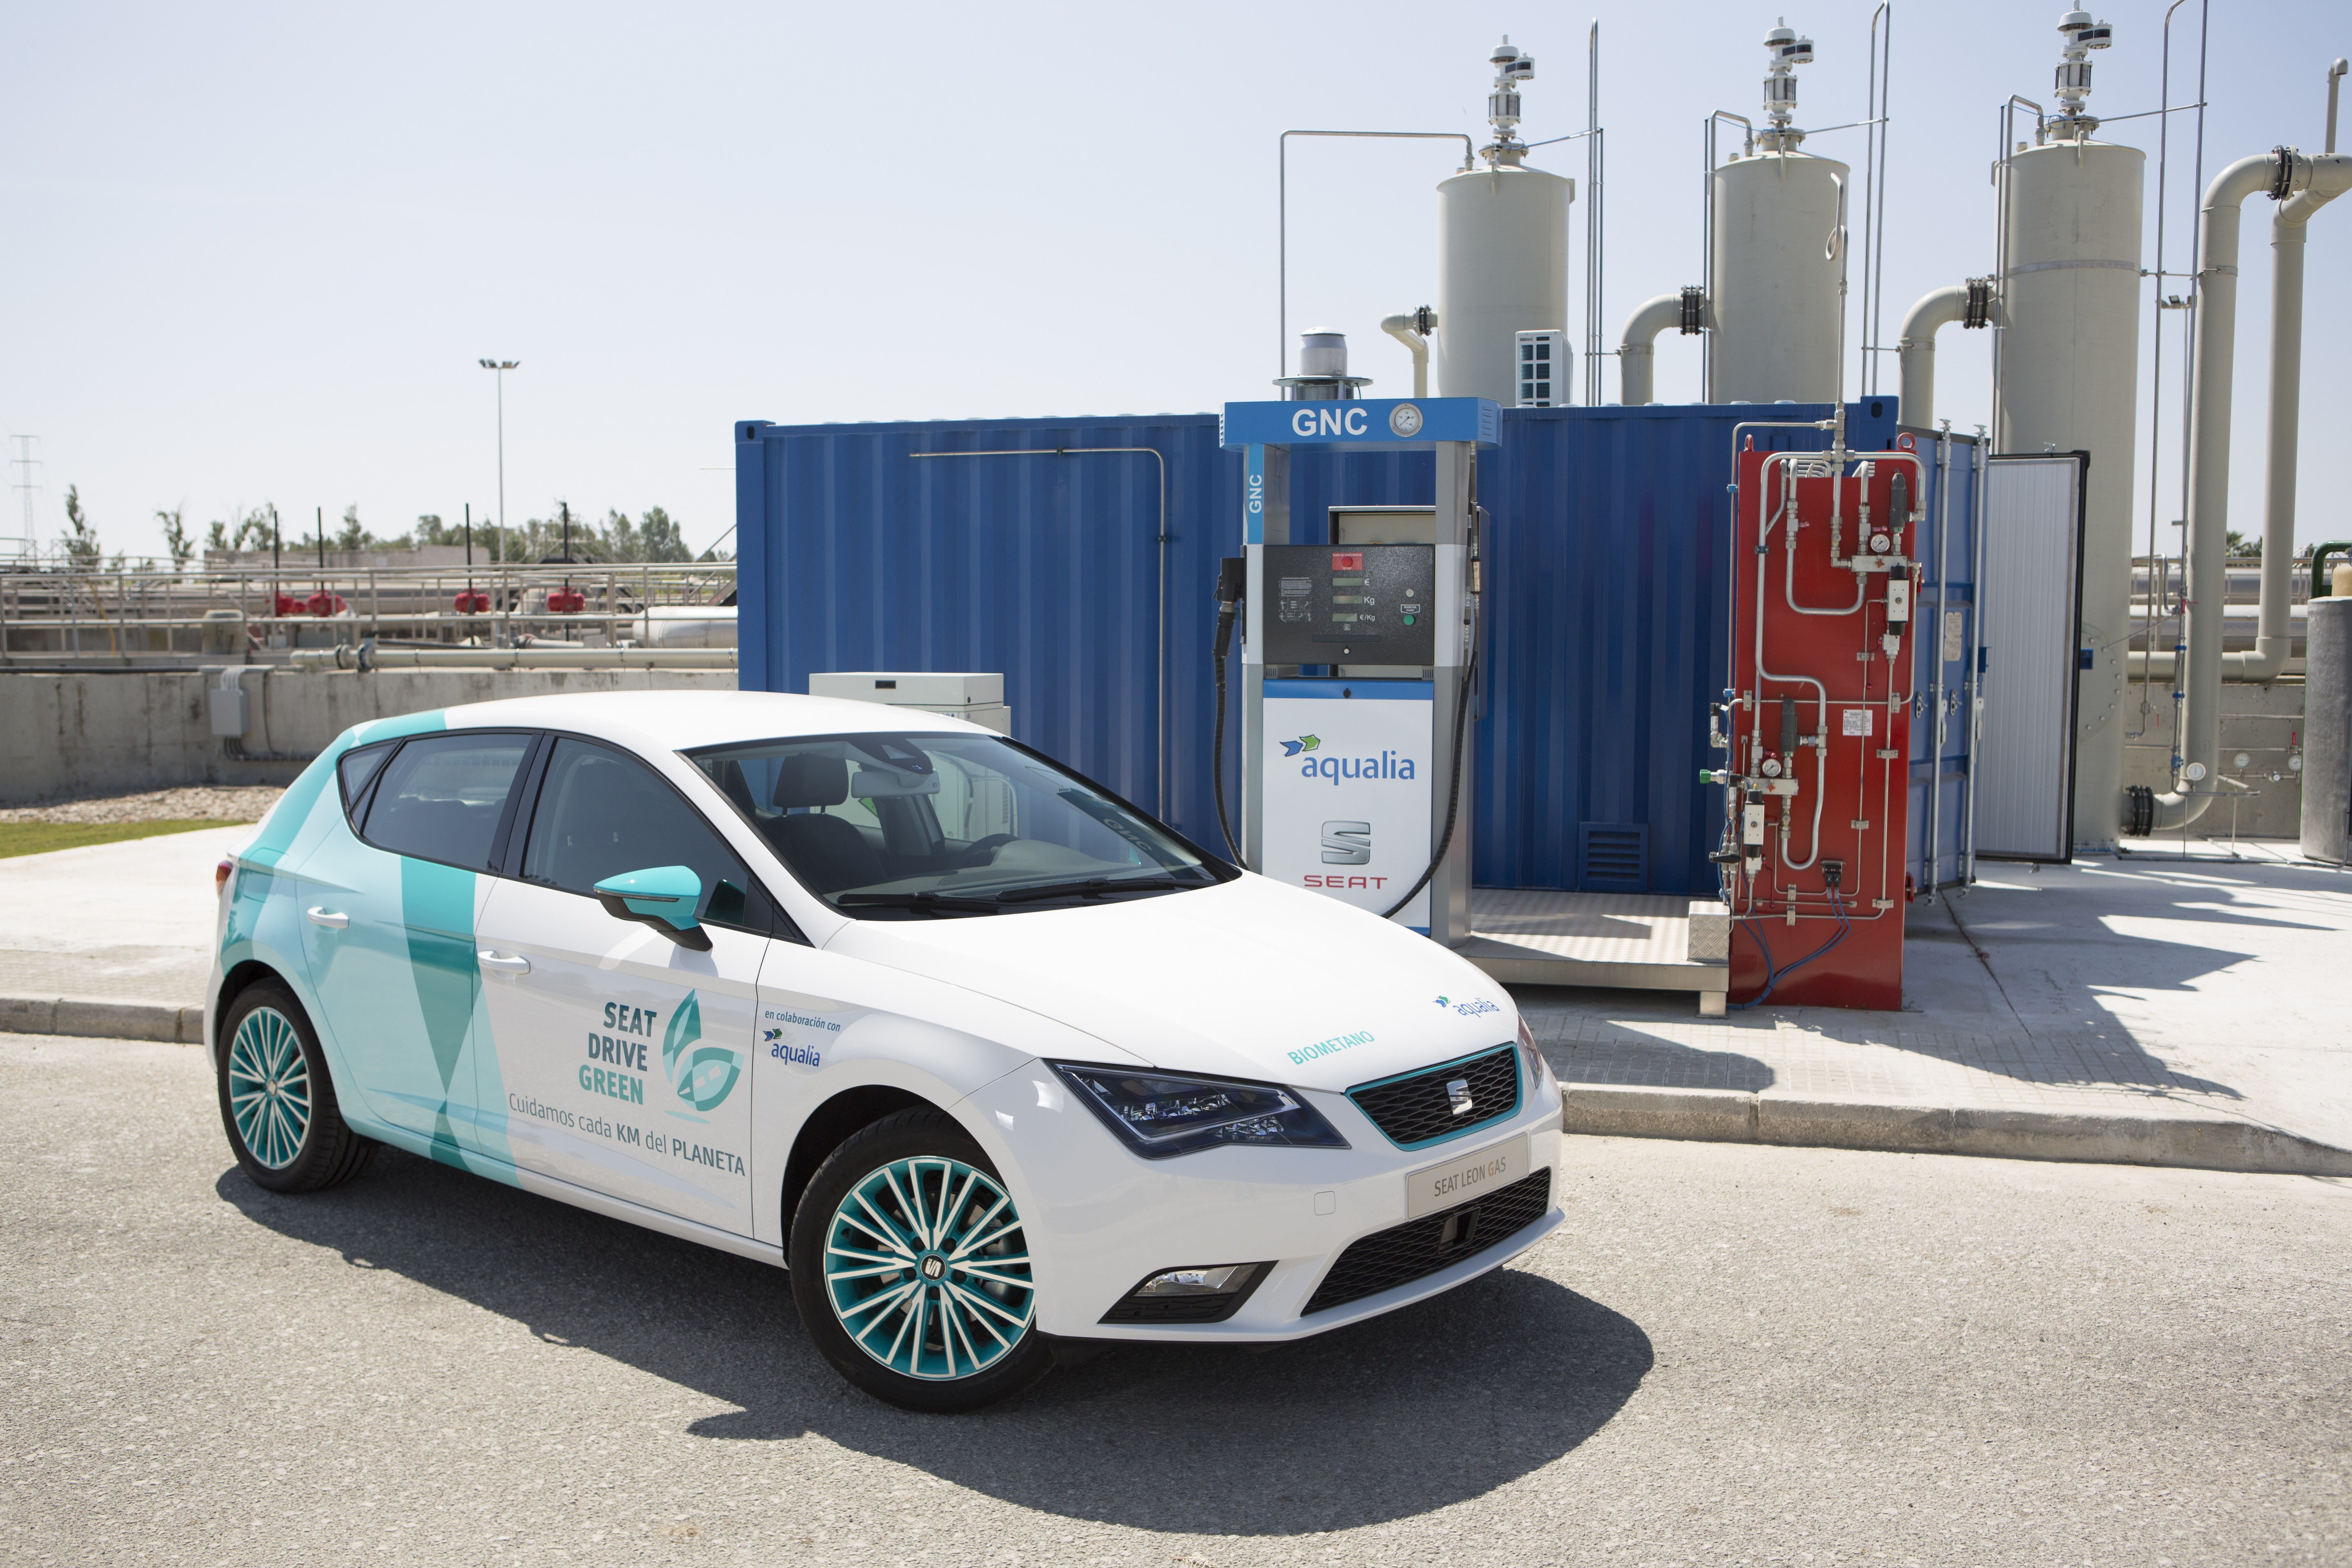 Seat Teams Up With Water Company To Power Cars Sewage